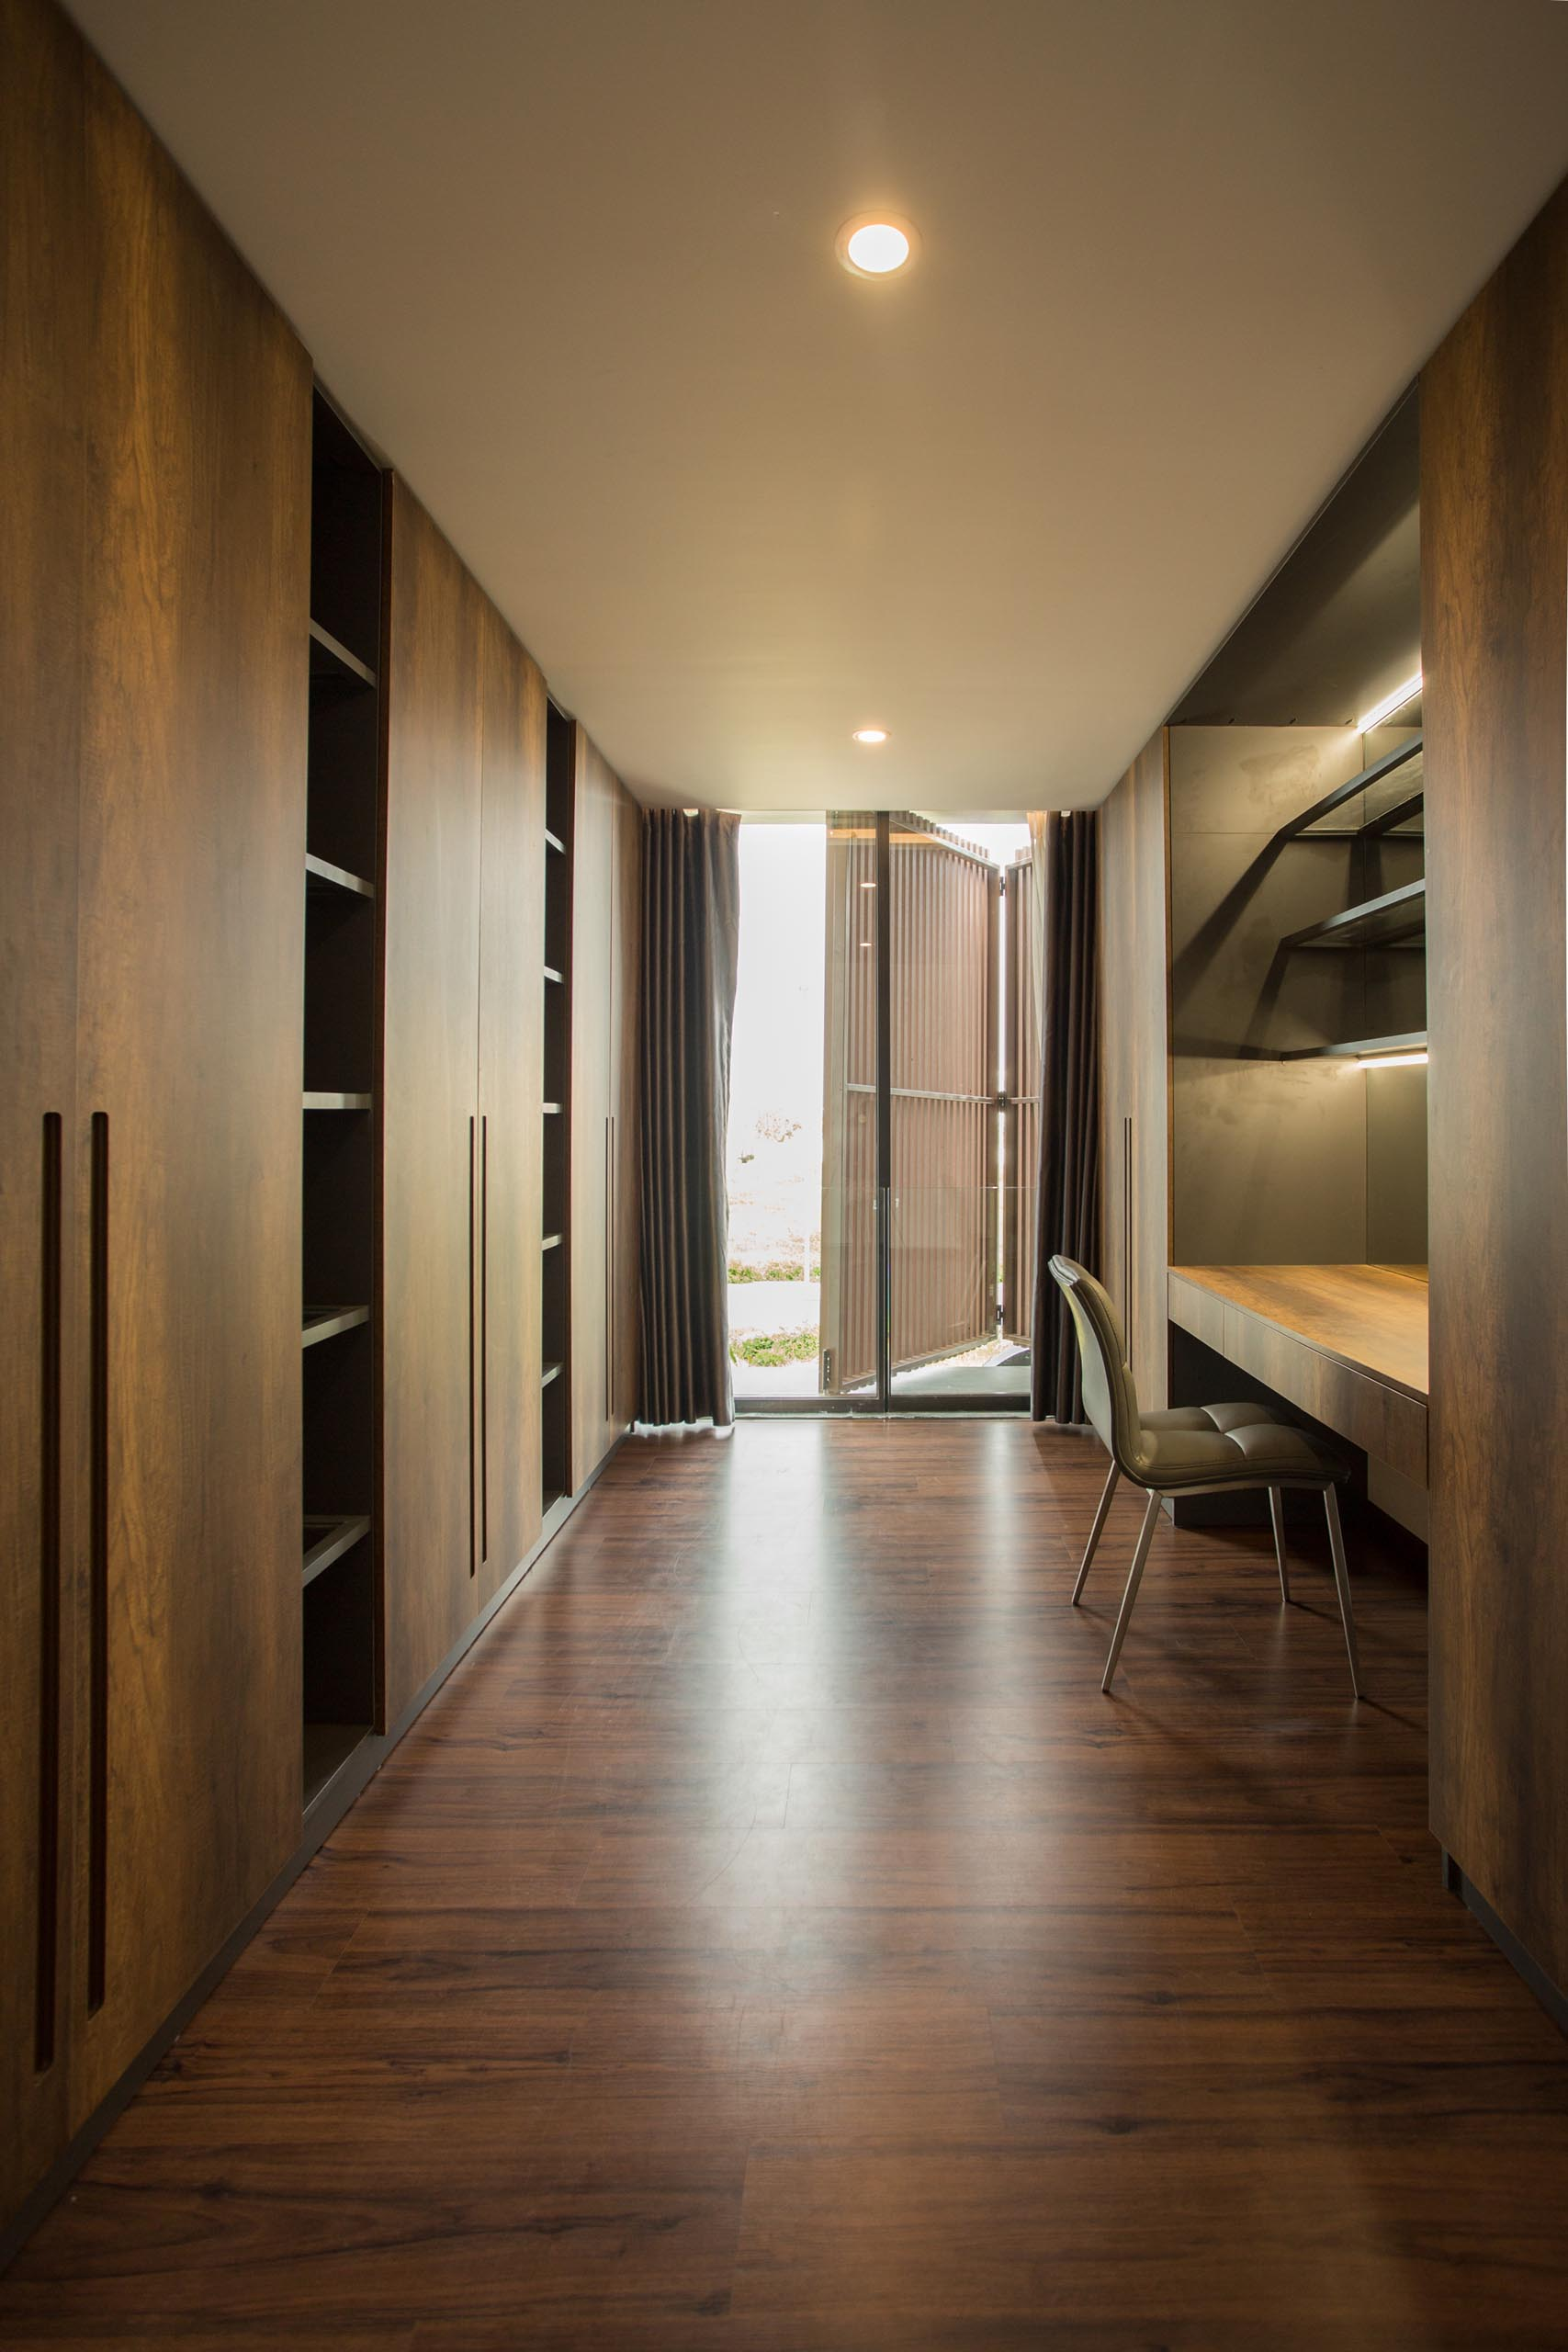 A walk-in closet with dark wood cabinets and a dedicated desk/vanity area.